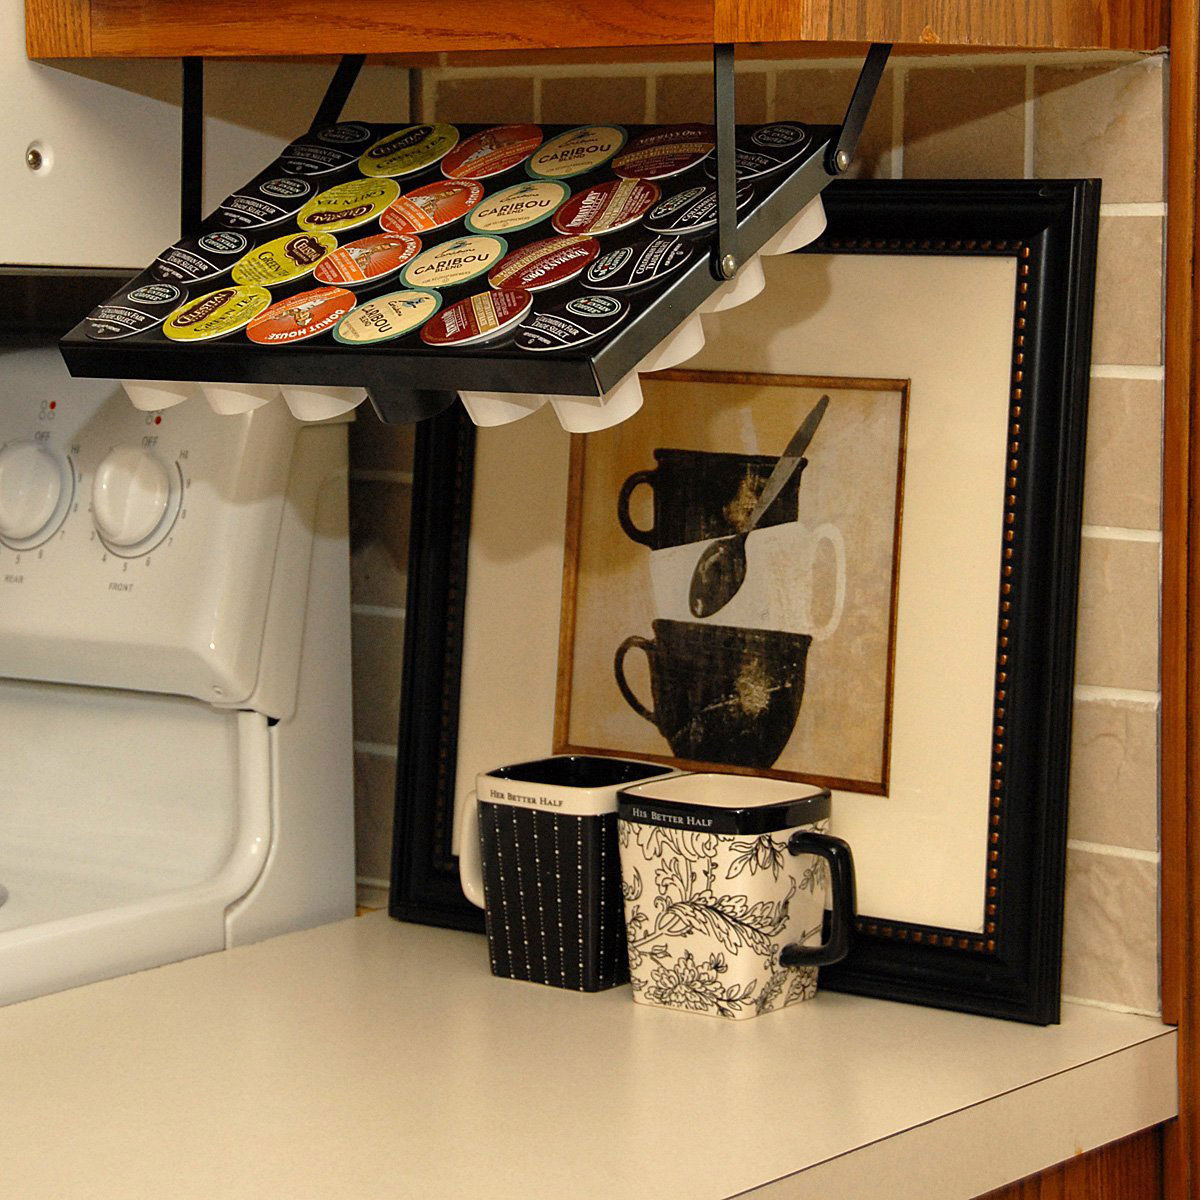 Superieur Under Cabinet Keurig K Cup Holder